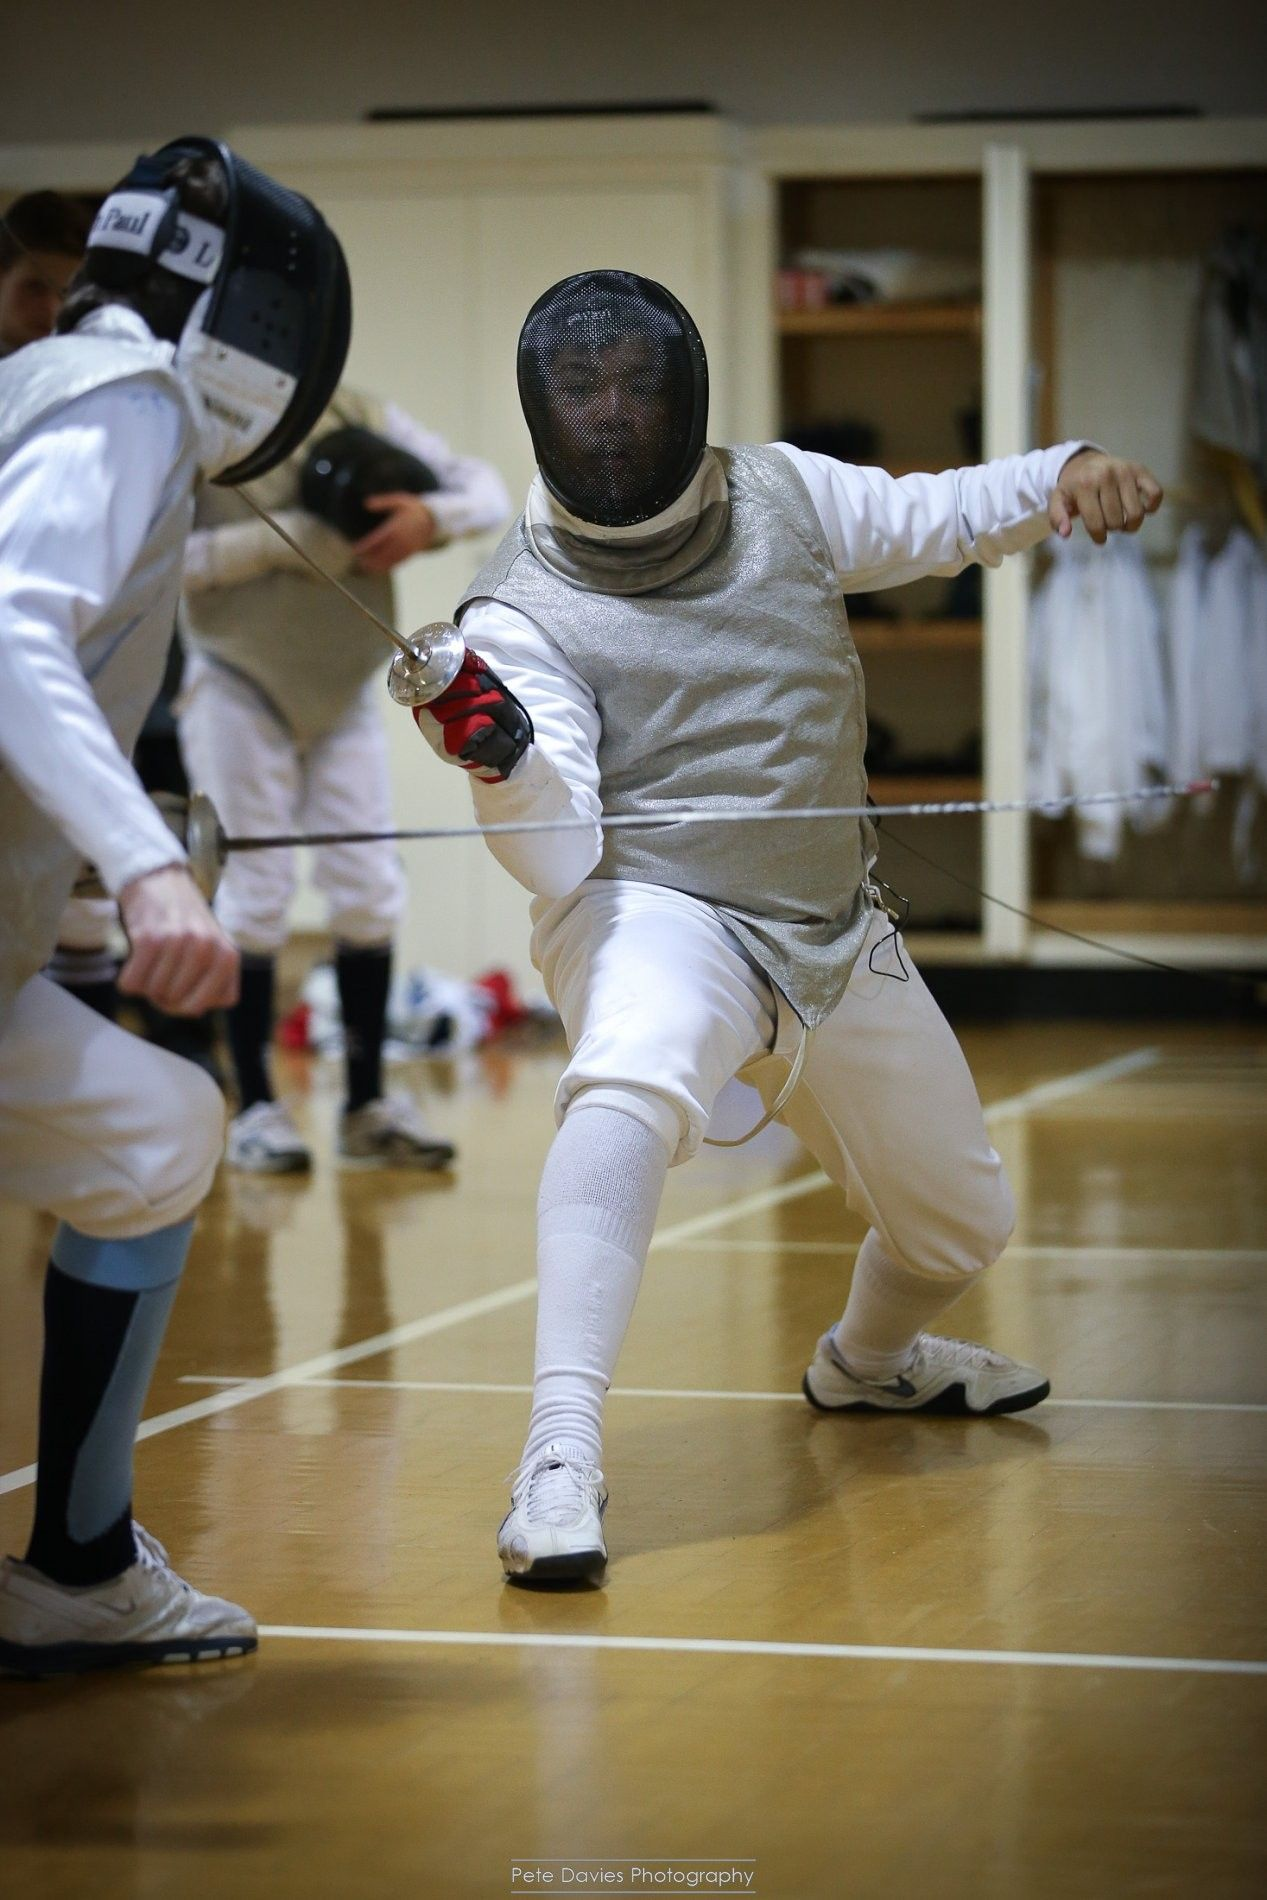 Fencing Photography | Action Sports Photography | Fence, Fencing